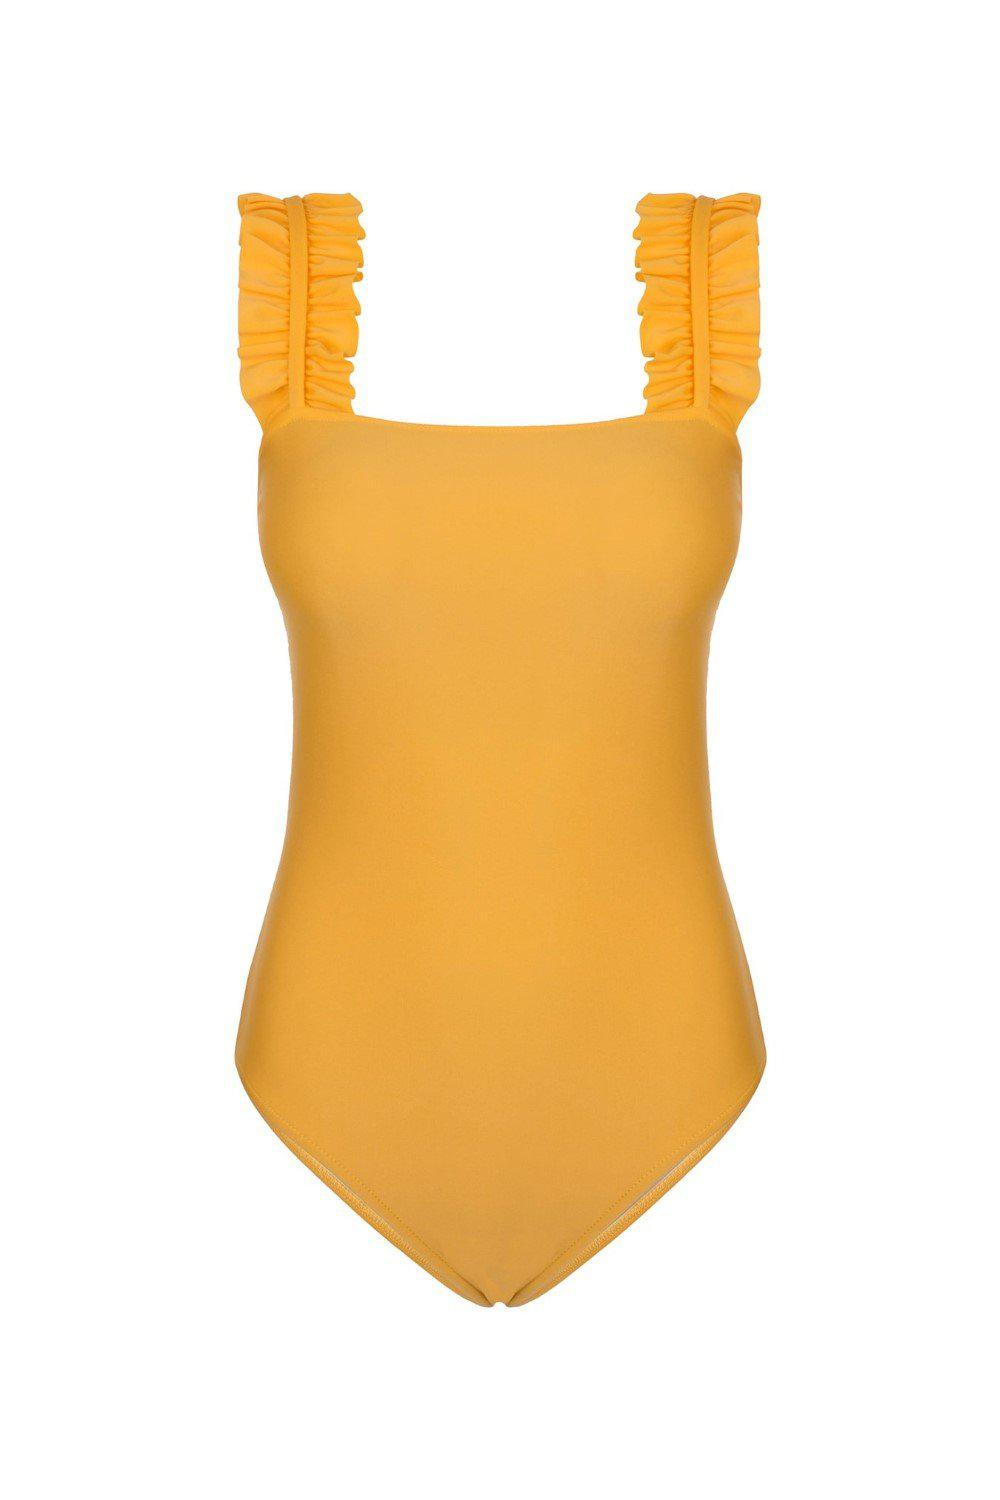 Muse Swimsuit with Ruffles